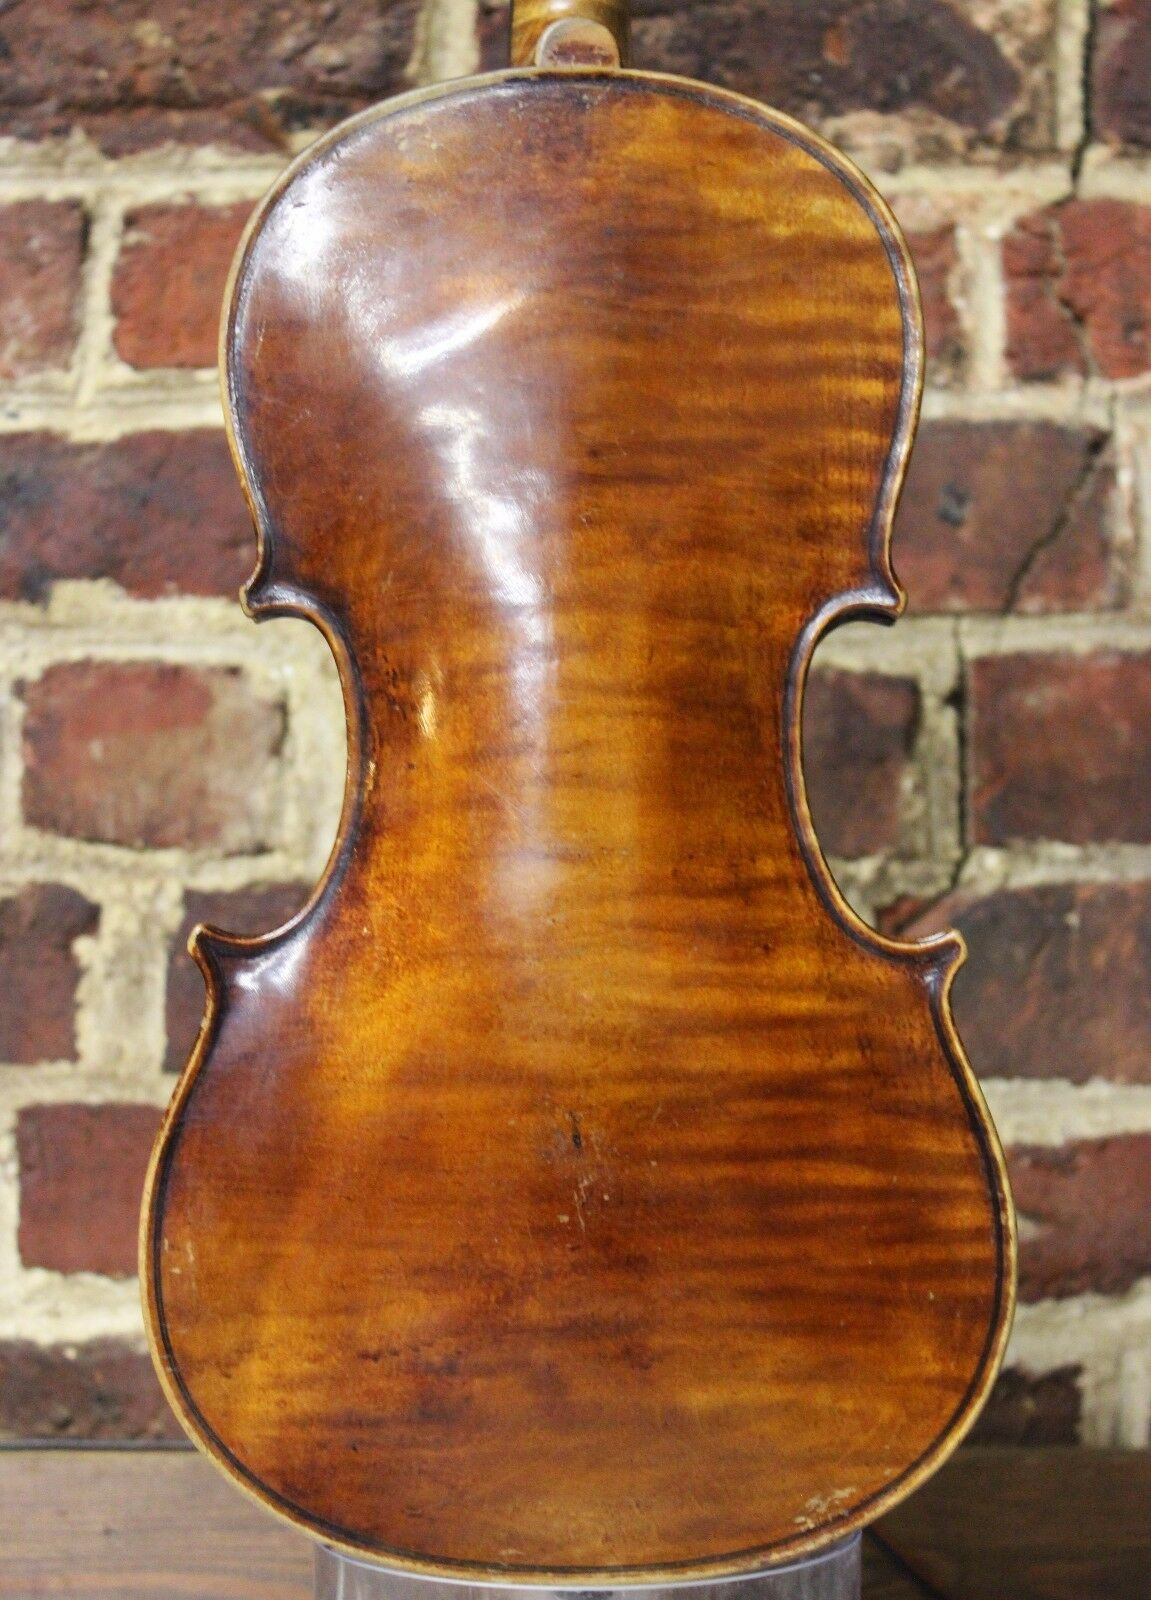 A Very Interesting Old Violin